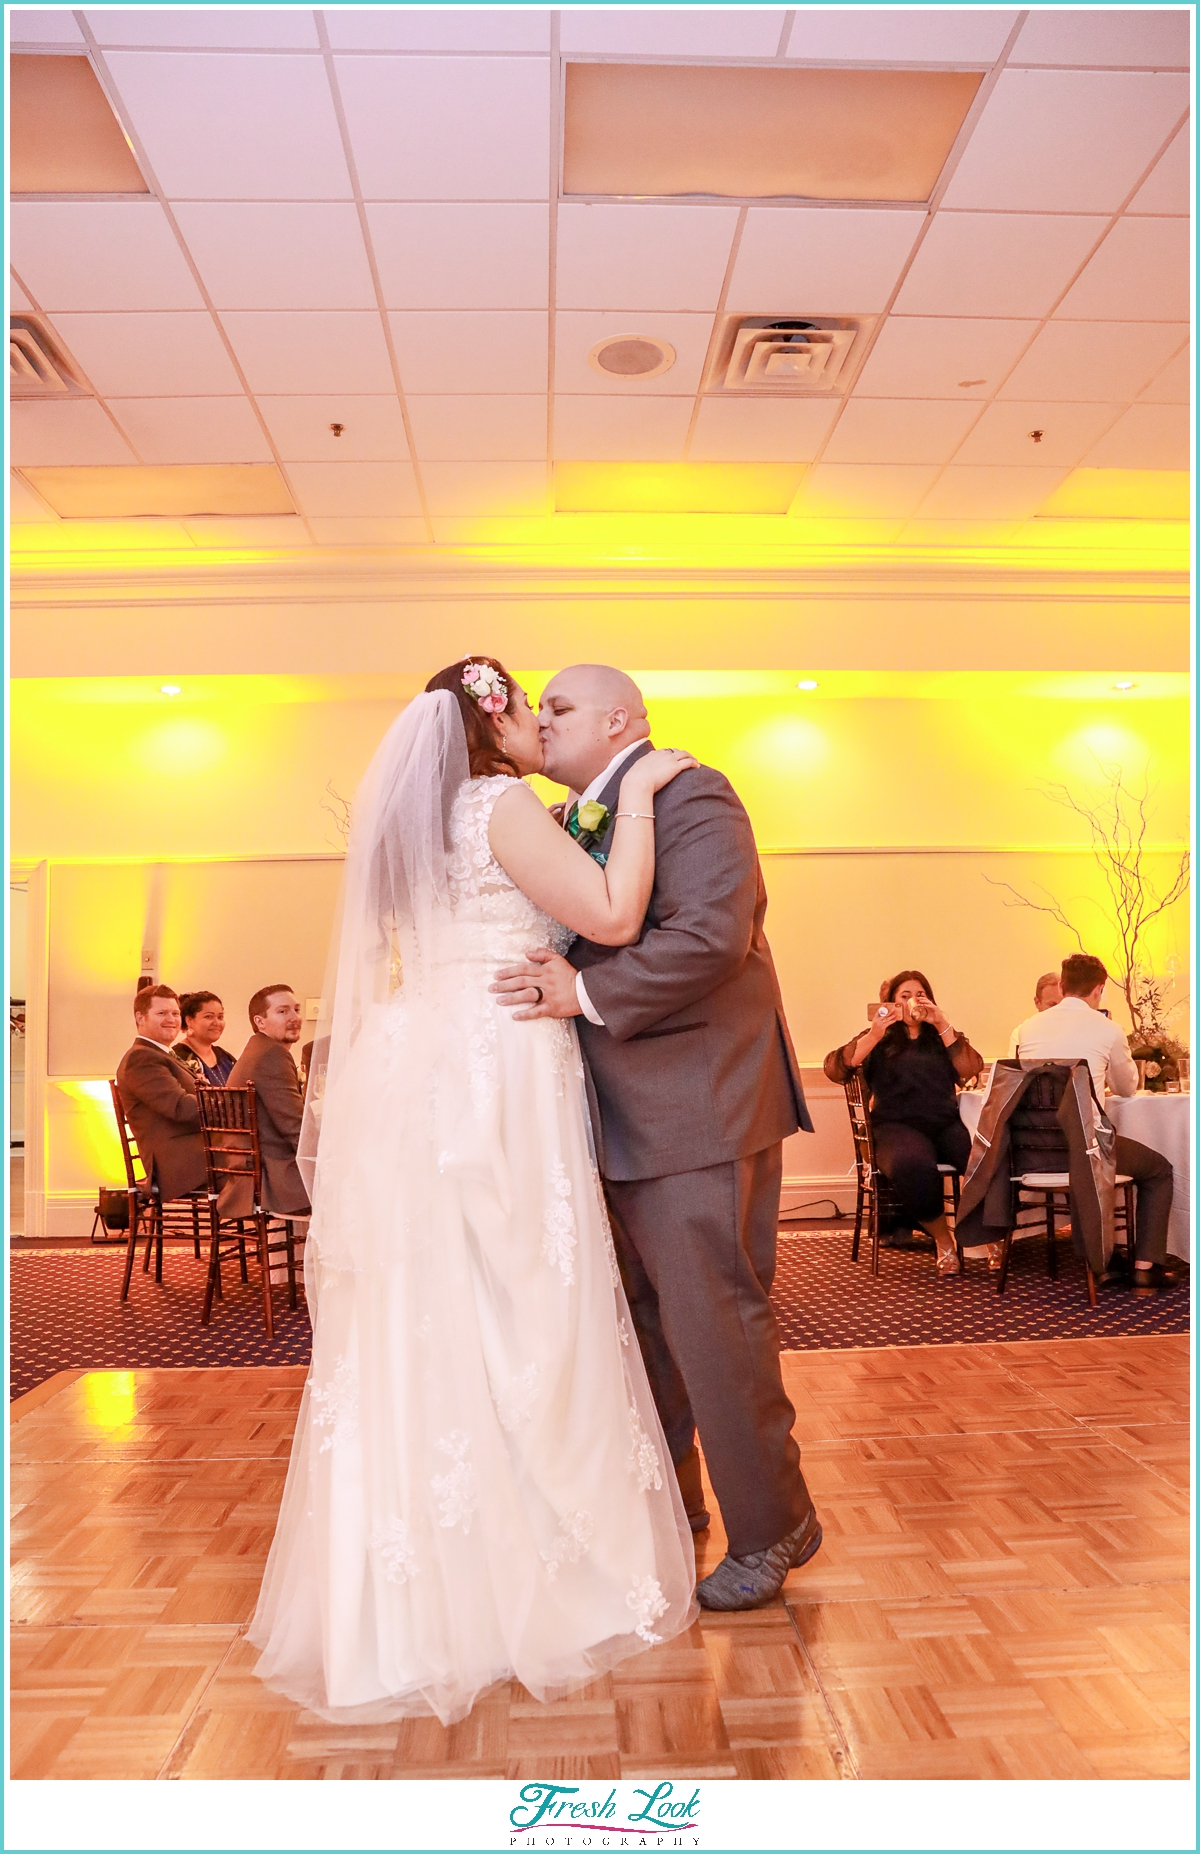 First Dance for bride and groom at reception